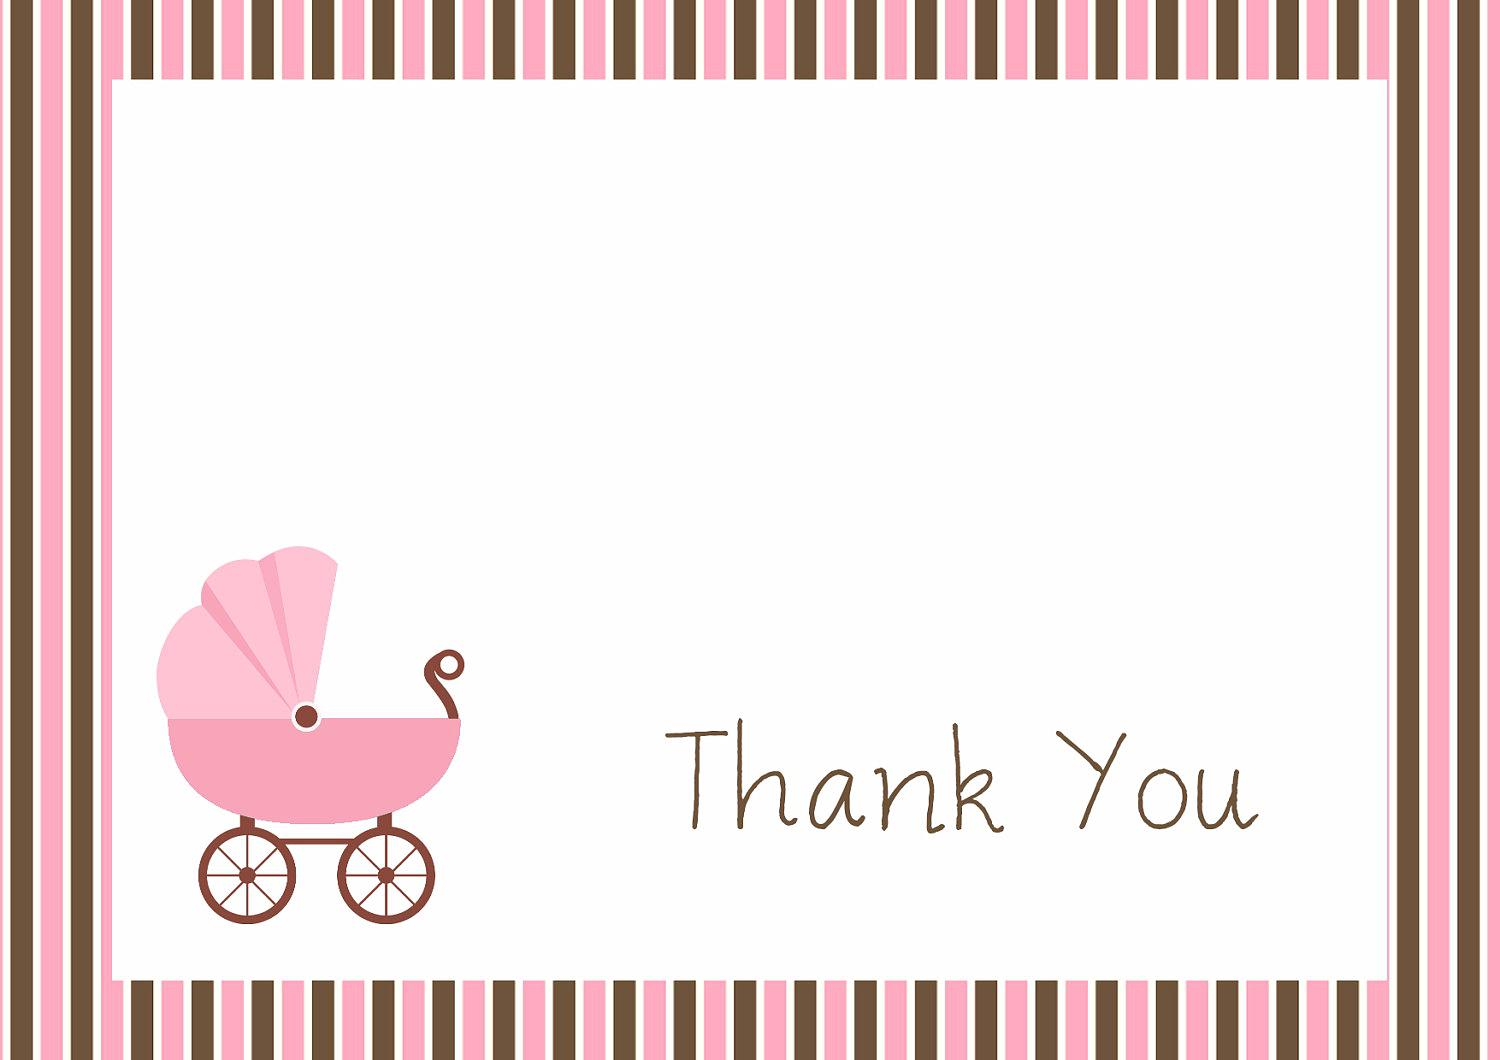 Full Size of Baby Shower:72+ Rousing Baby Shower Thank You Cards Picture Ideas Baby Shower Thank You Cards Juegos Para Baby Shower Baby Shower Cake Ideas Baby Shower Dessert Table Baby Shower Baskets Modern Baby Shower Thank You Card Ideas For Baby Shower Ndash Mykiddyclub